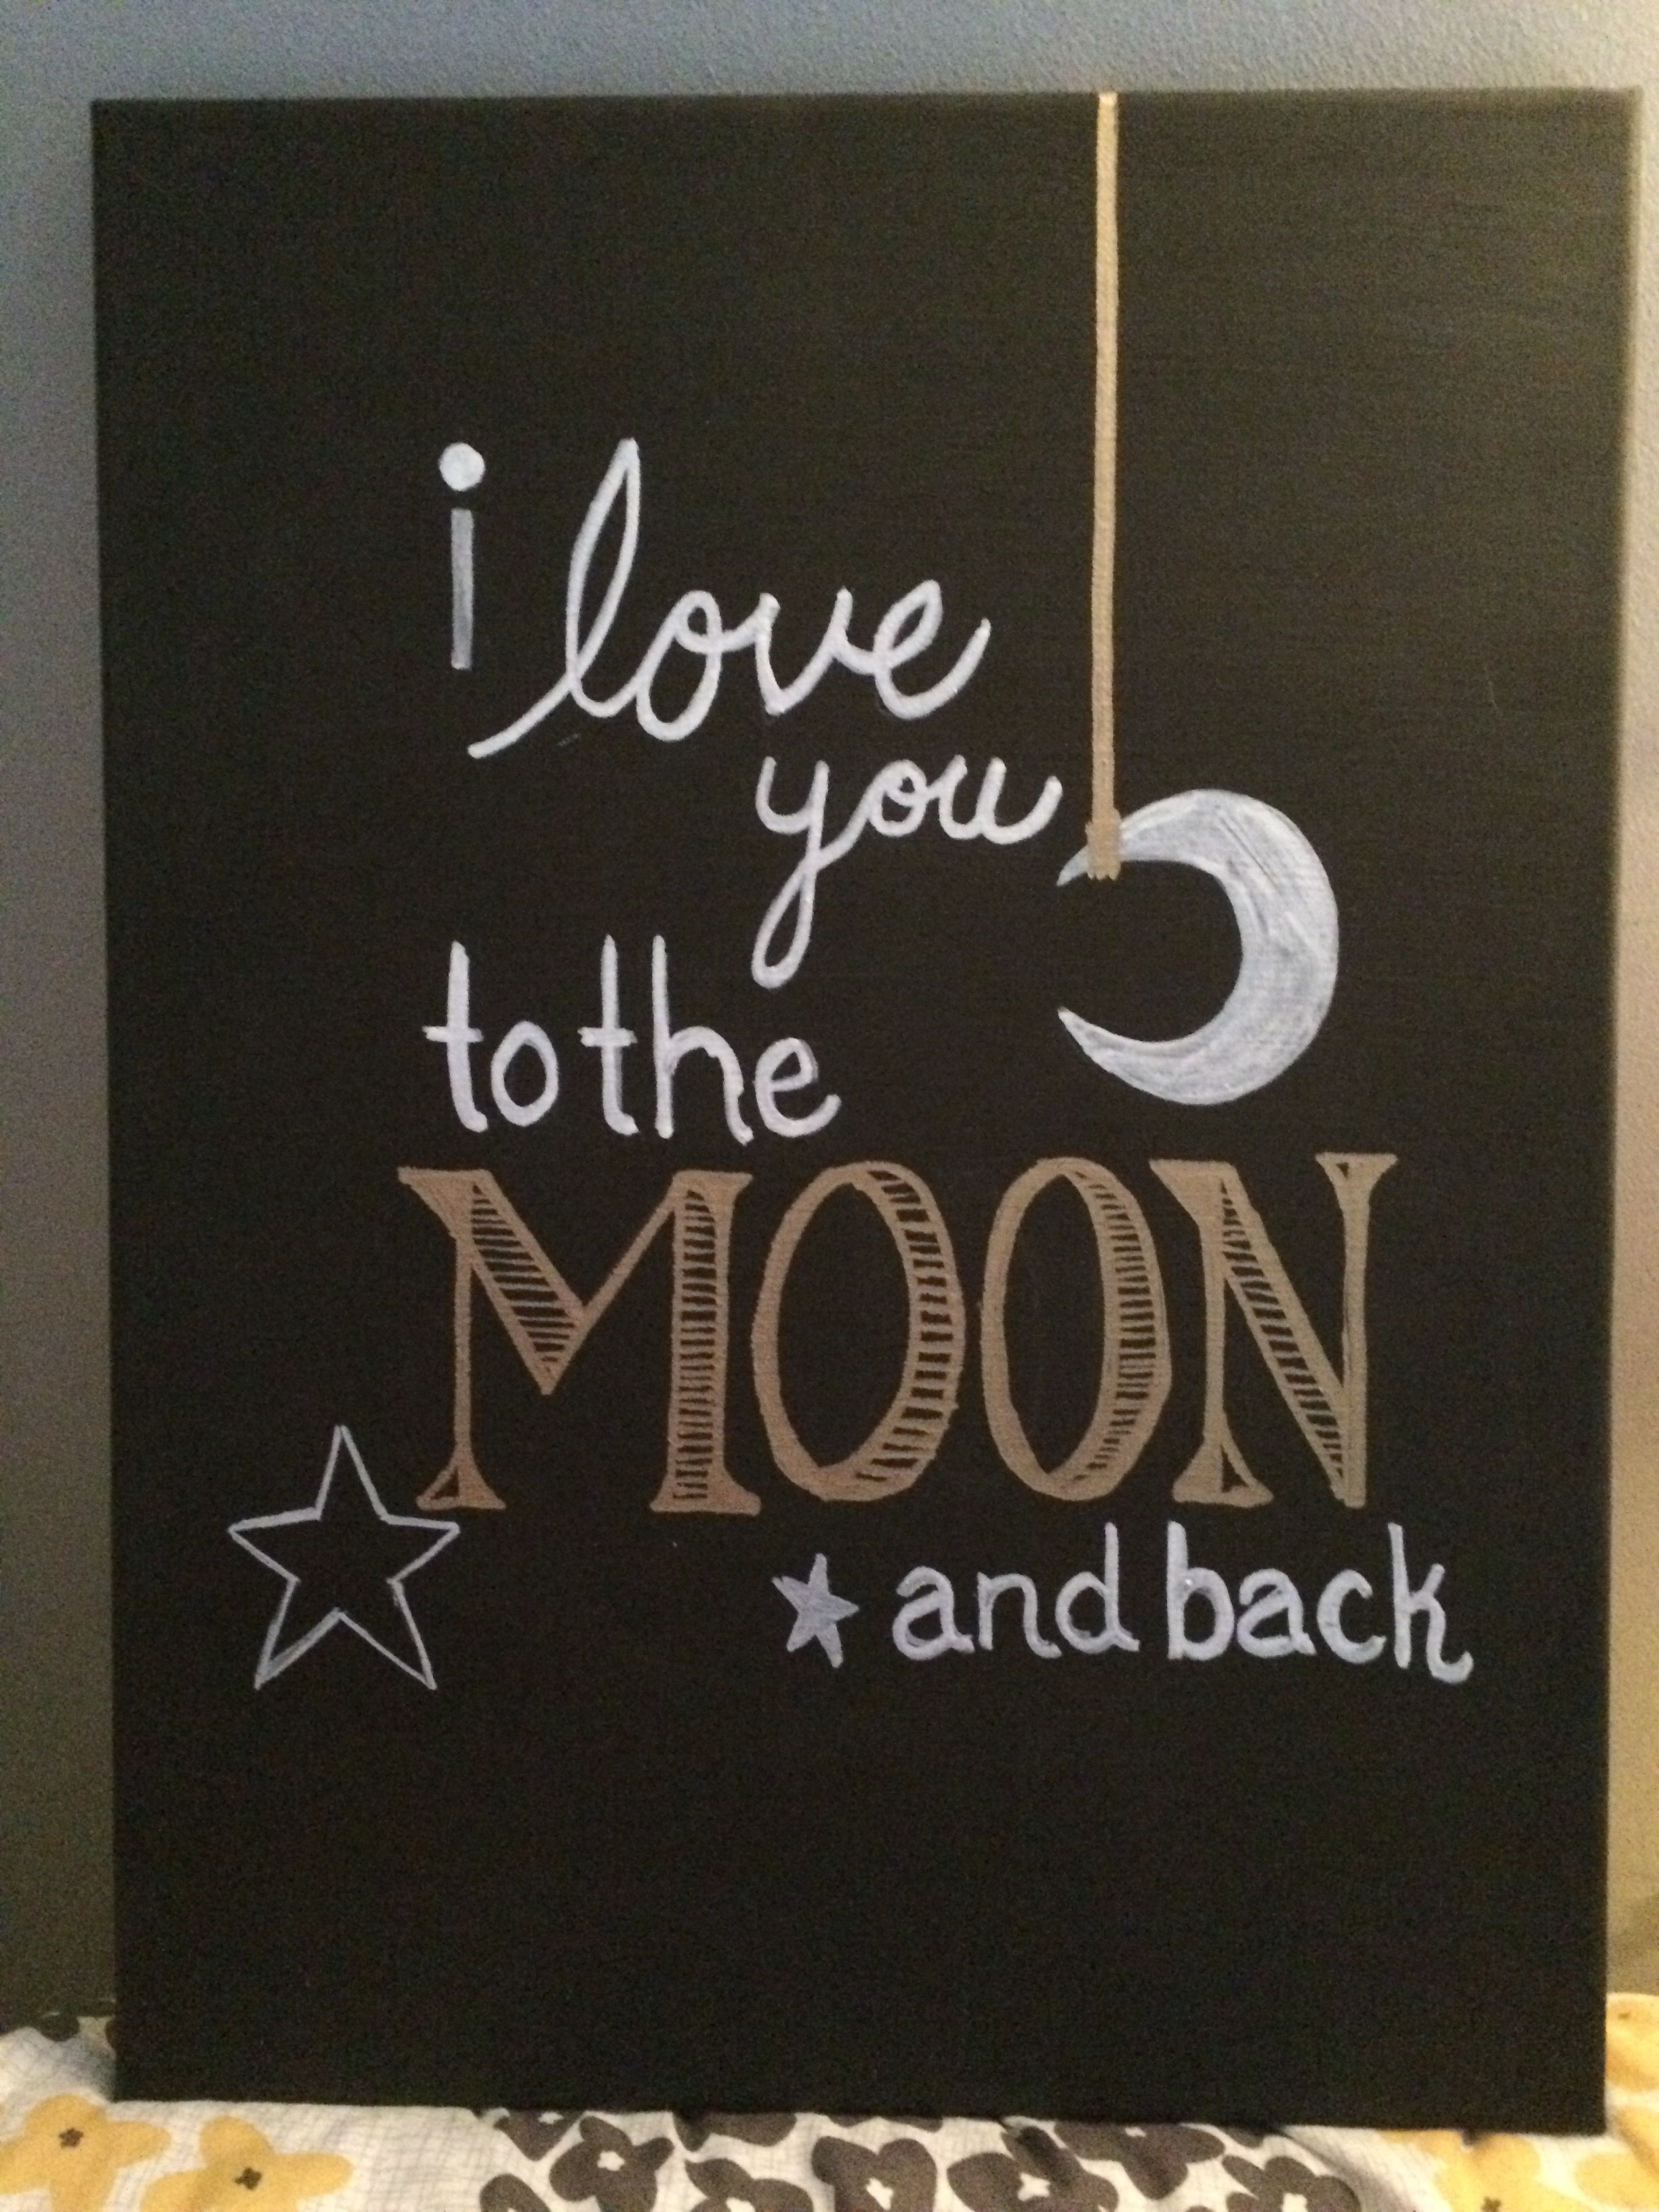 """Painting done on Canvas. """"I love you to the moon and back"""